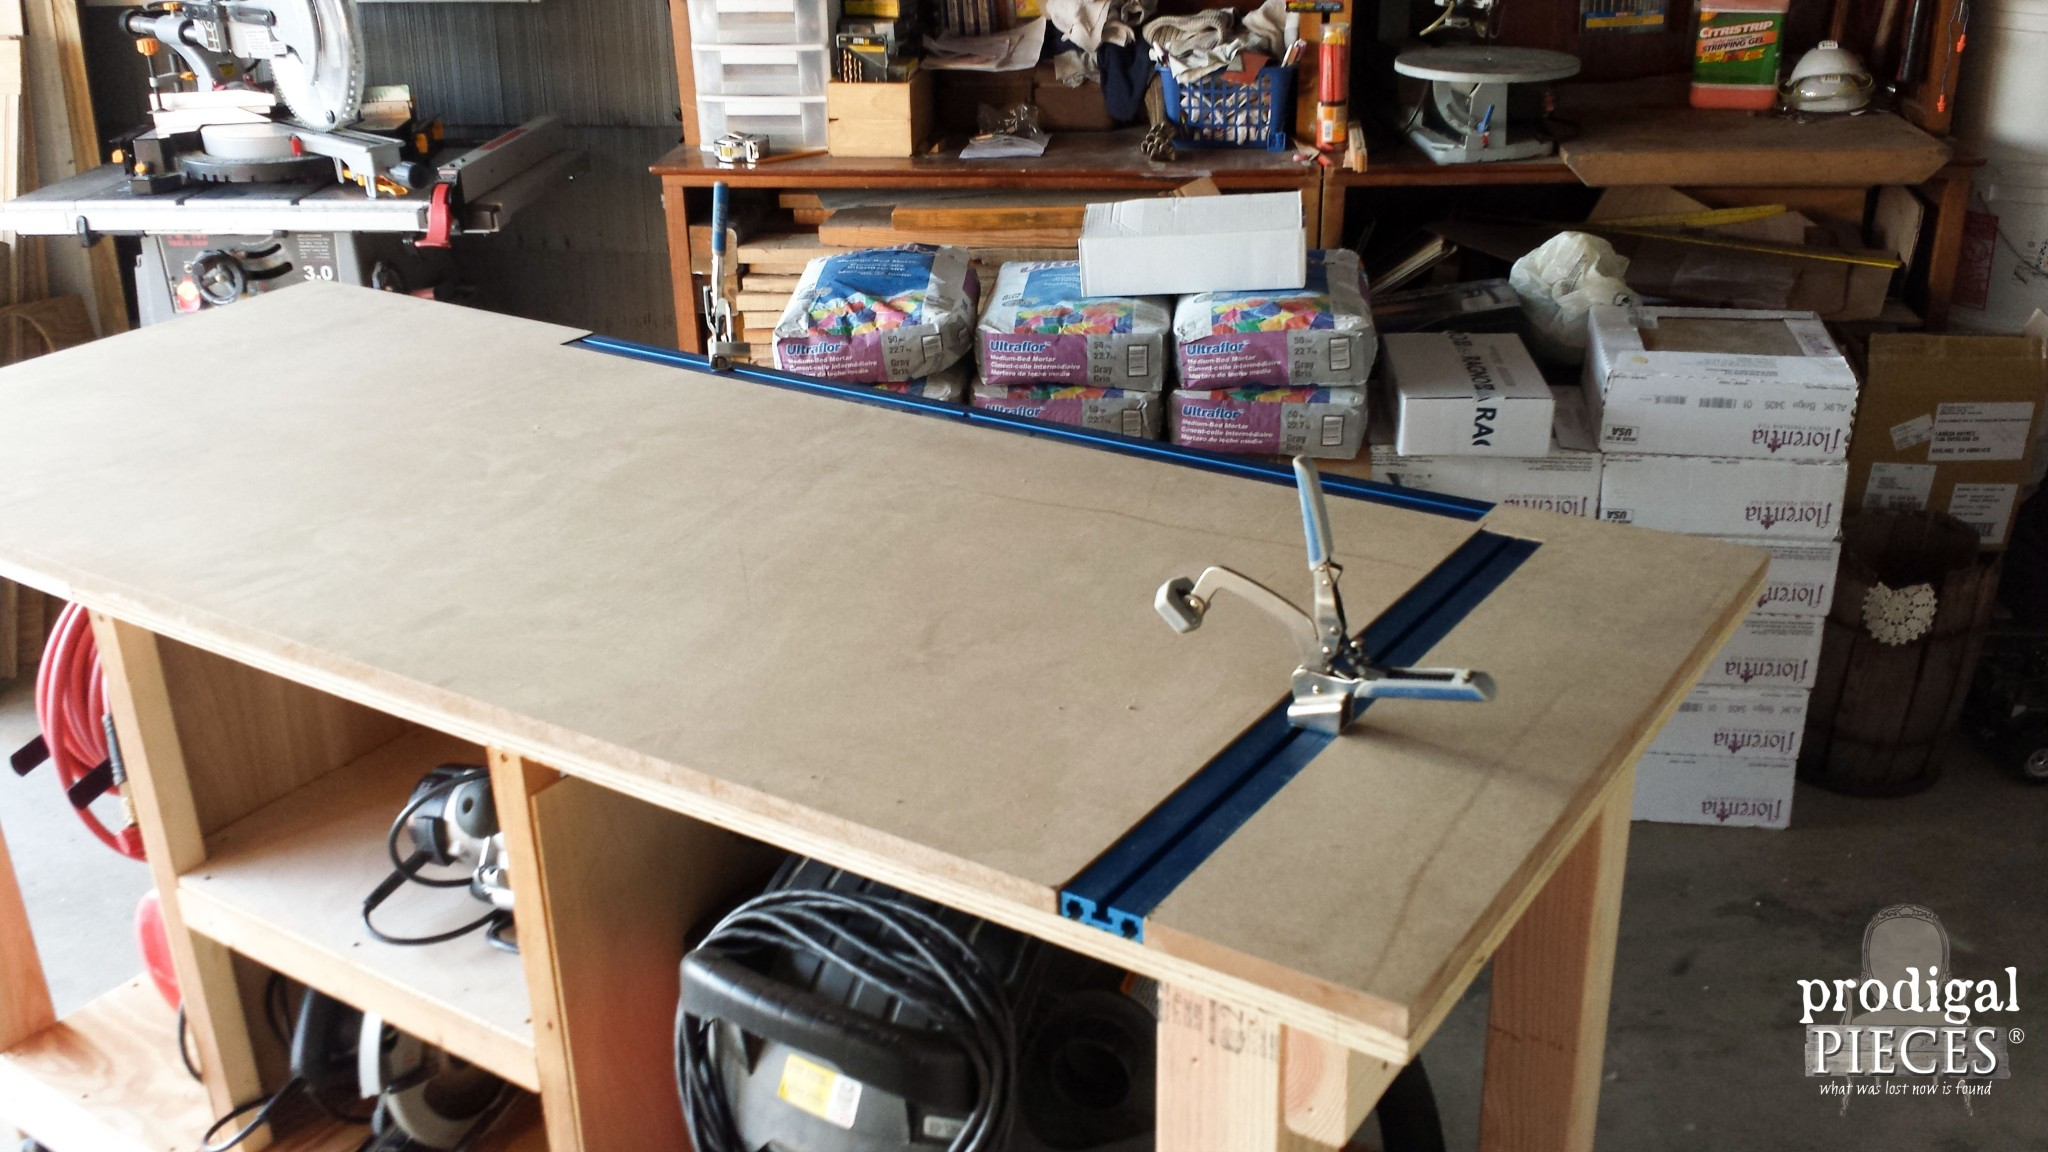 Diy kreg clamping table diy unixcode diy workbench fit for a junker prodigal pieces combo router table klamp greentooth Images